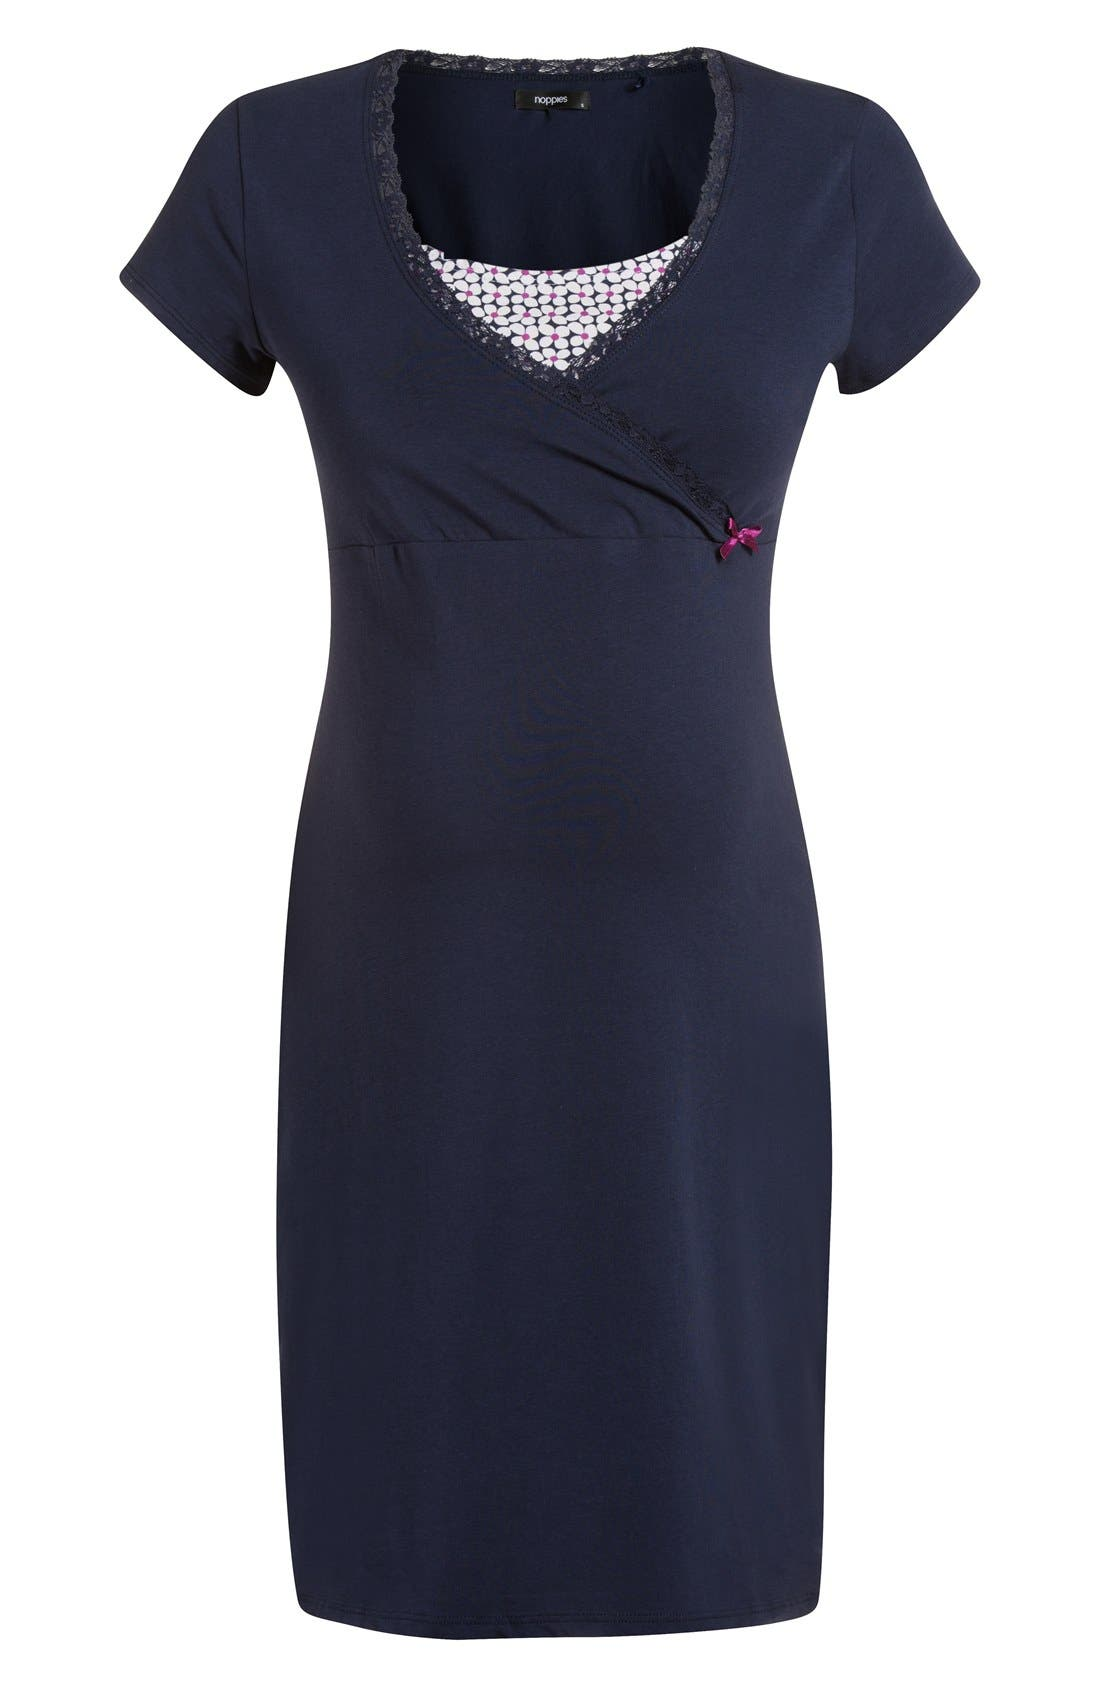 Noppies 'Marni' Maternity/Nursing Jersey Dress